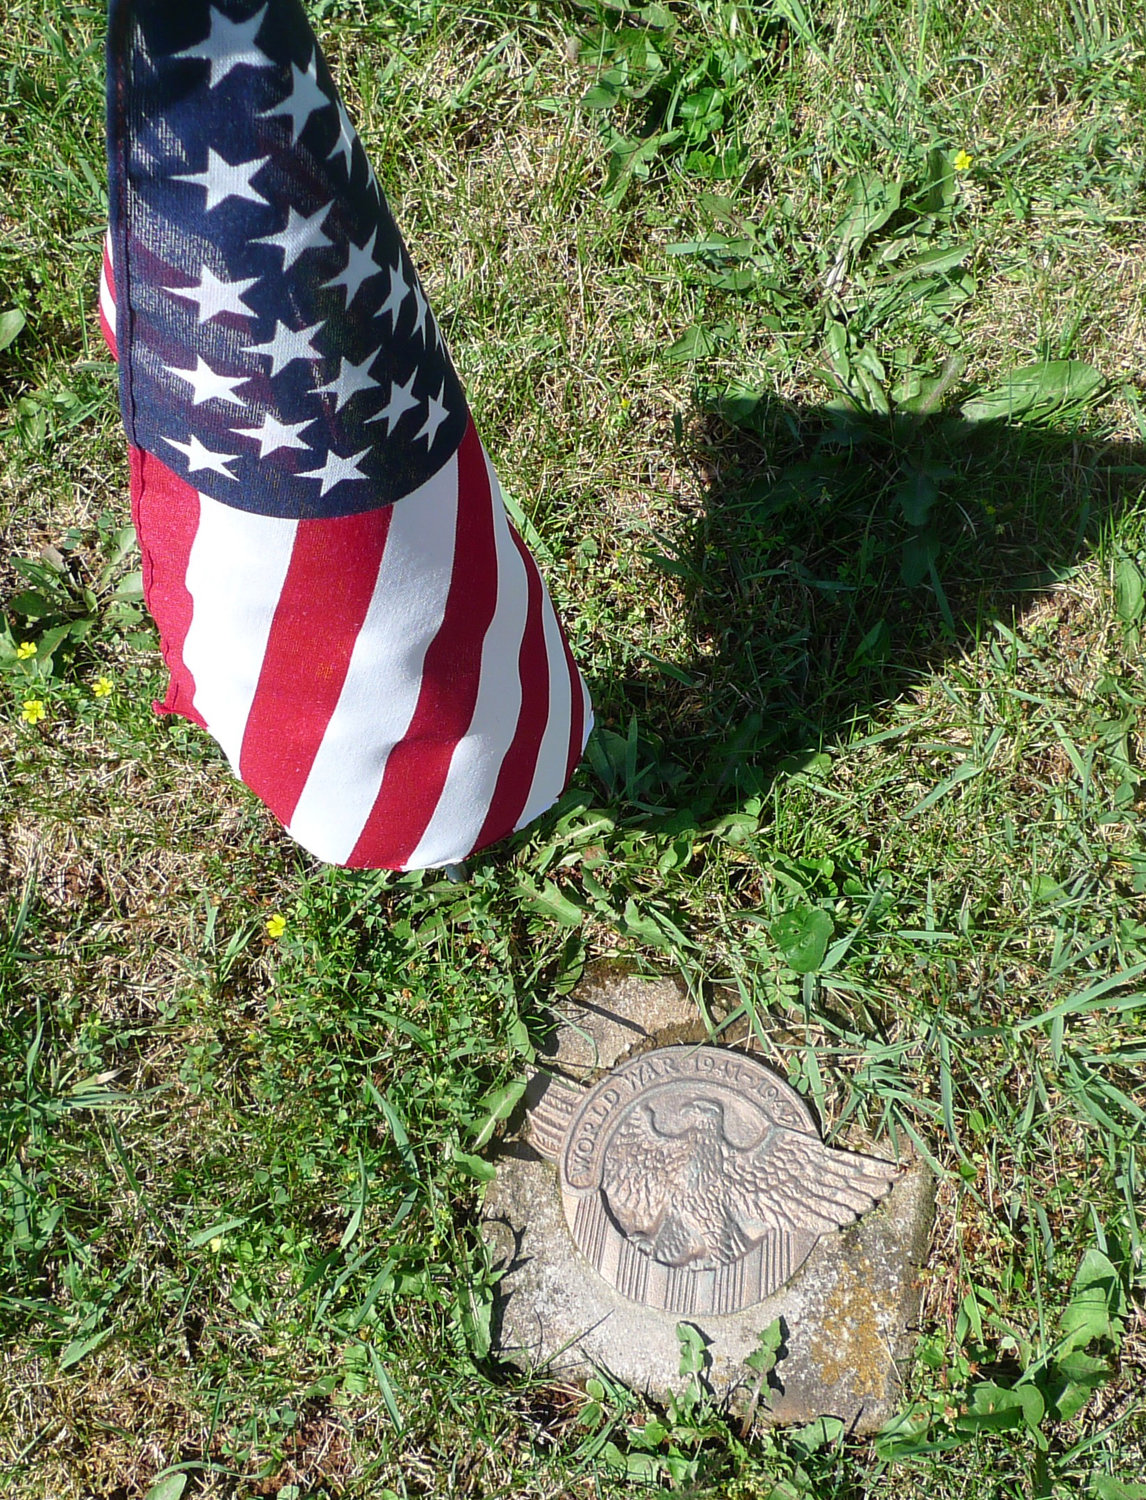 William Howard Hunter's grave is marked only by a small U.S. flag and a generic medallion noting he served in World War II.